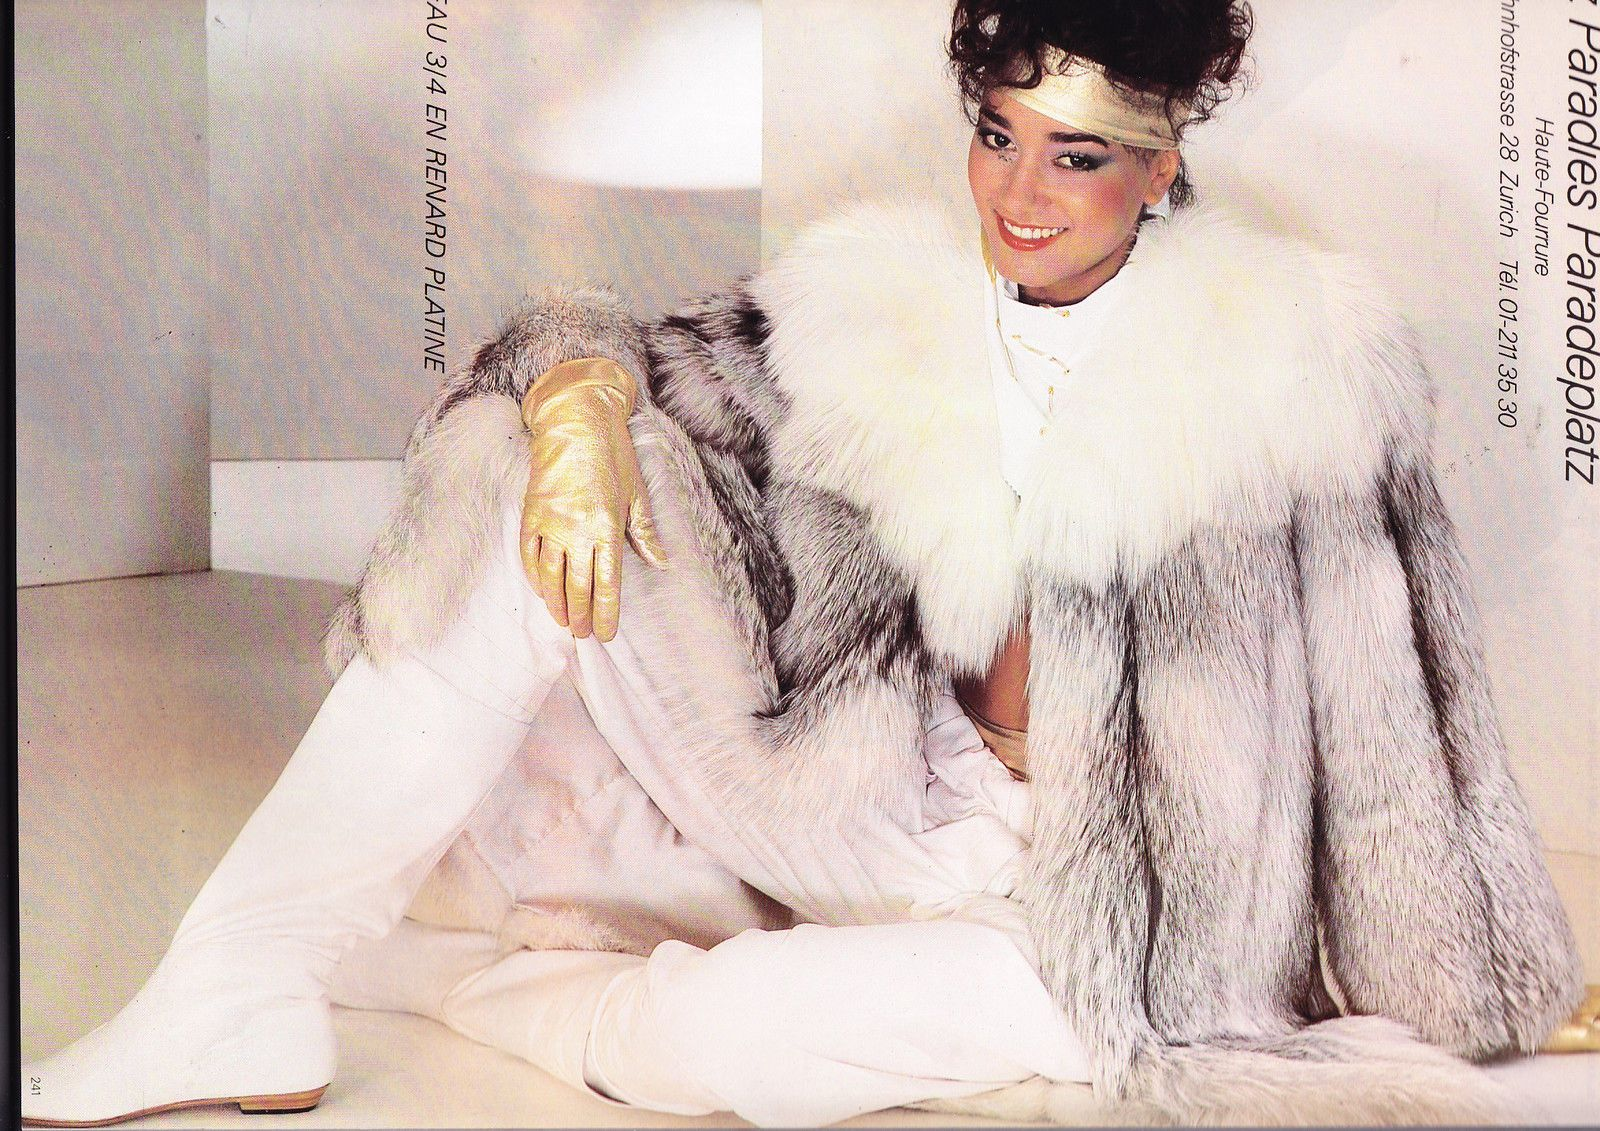 Vogue Paris September 1981. $_57.JPG 1,600×1,131 pixels